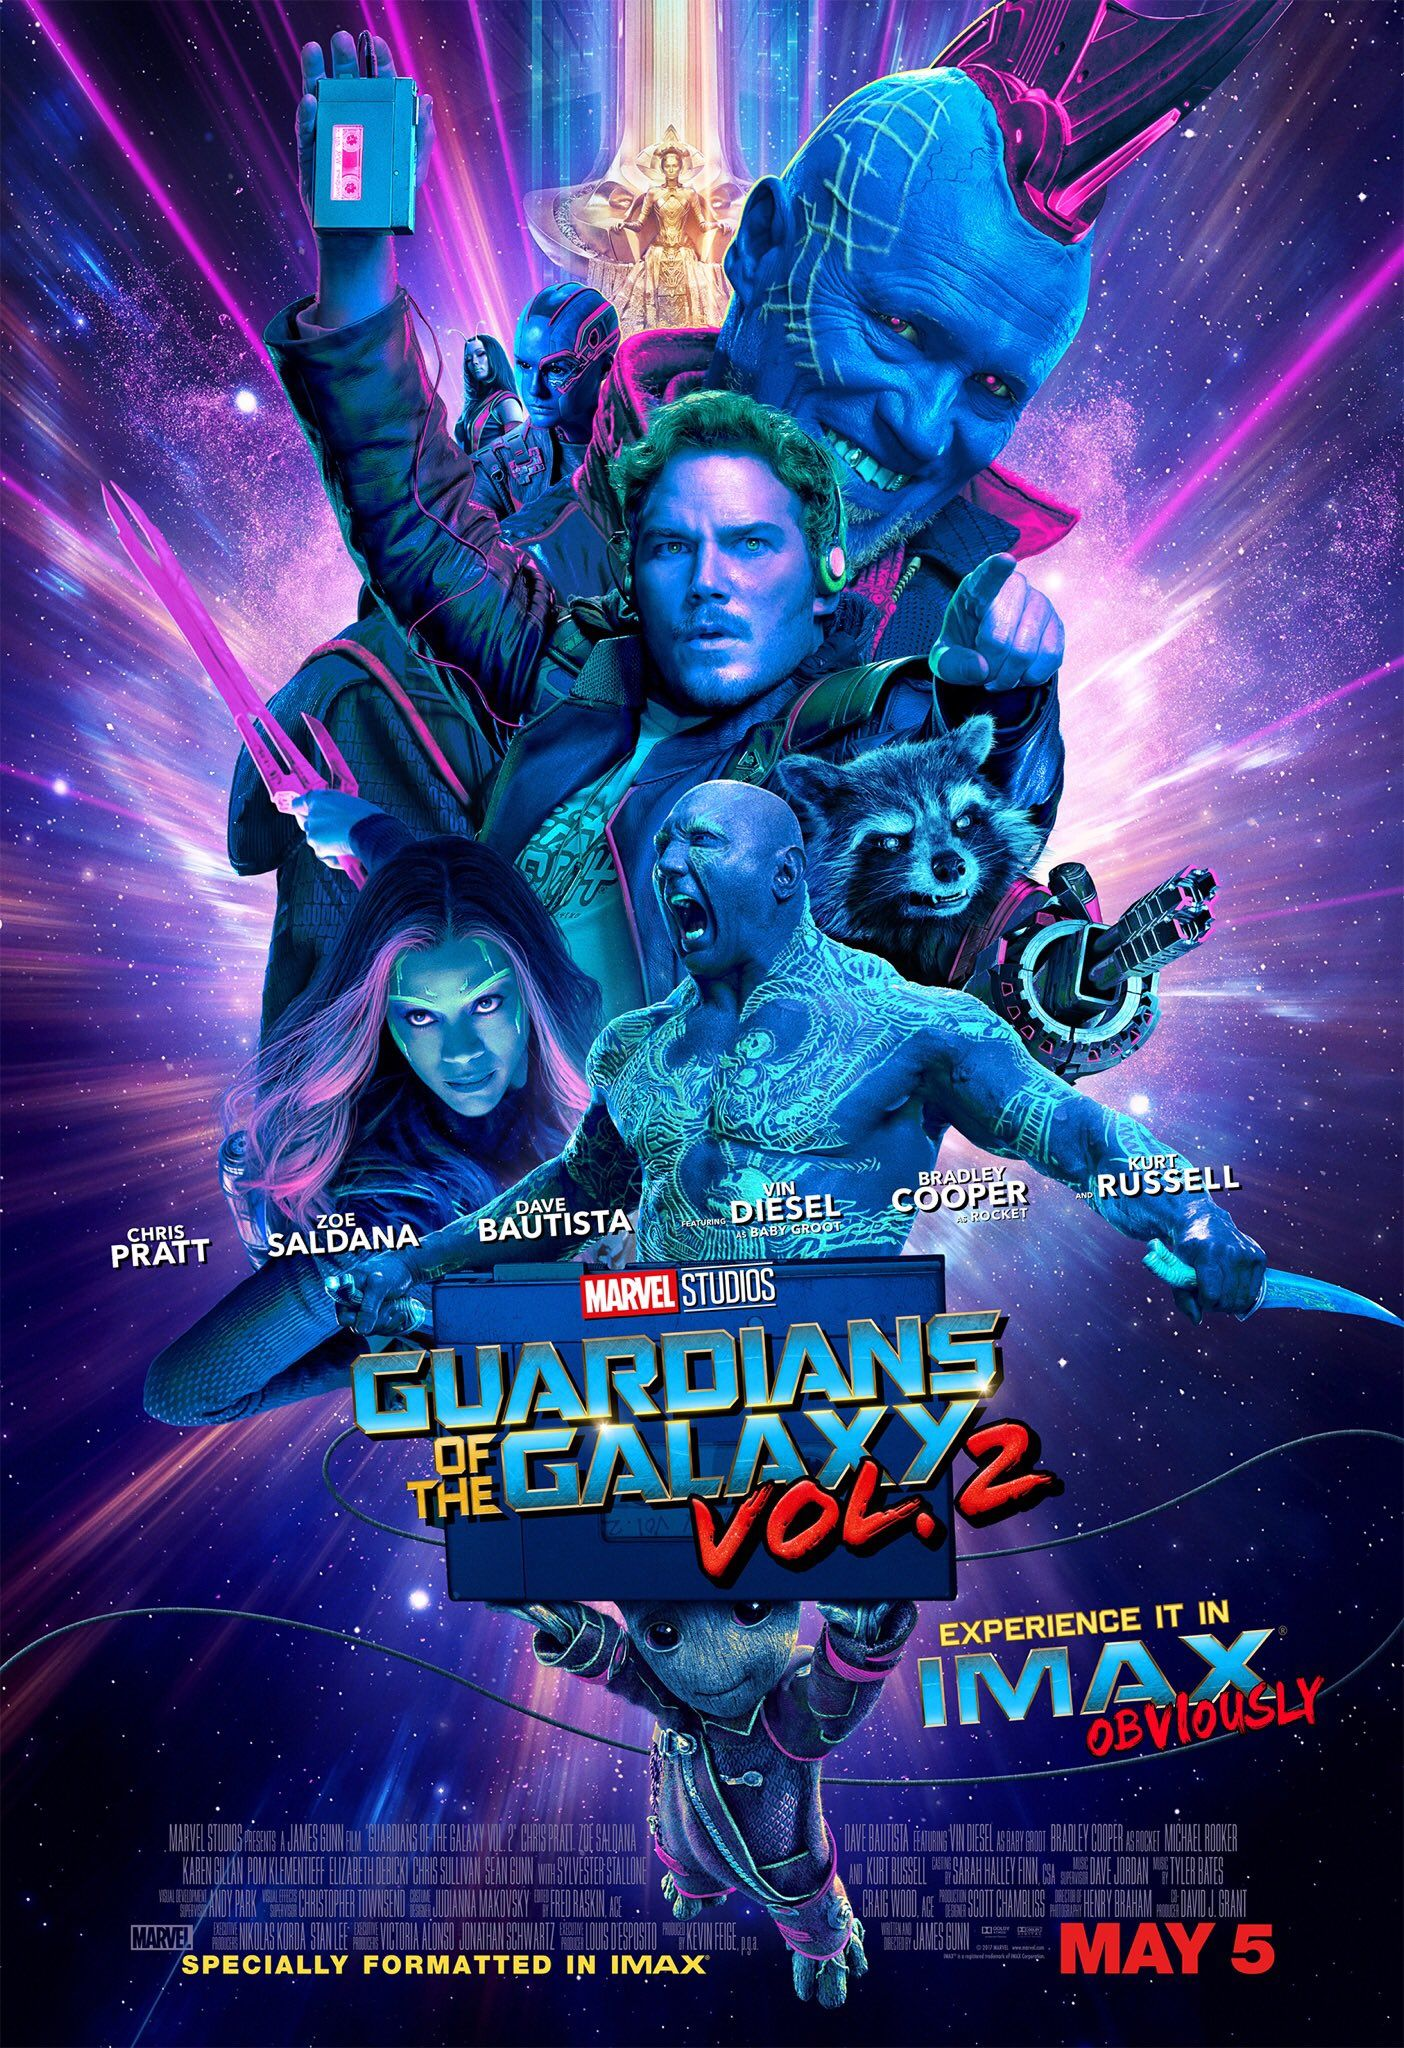 Guardians Of The Galaxy Vol 2 Gets A Groovy Imax Poster